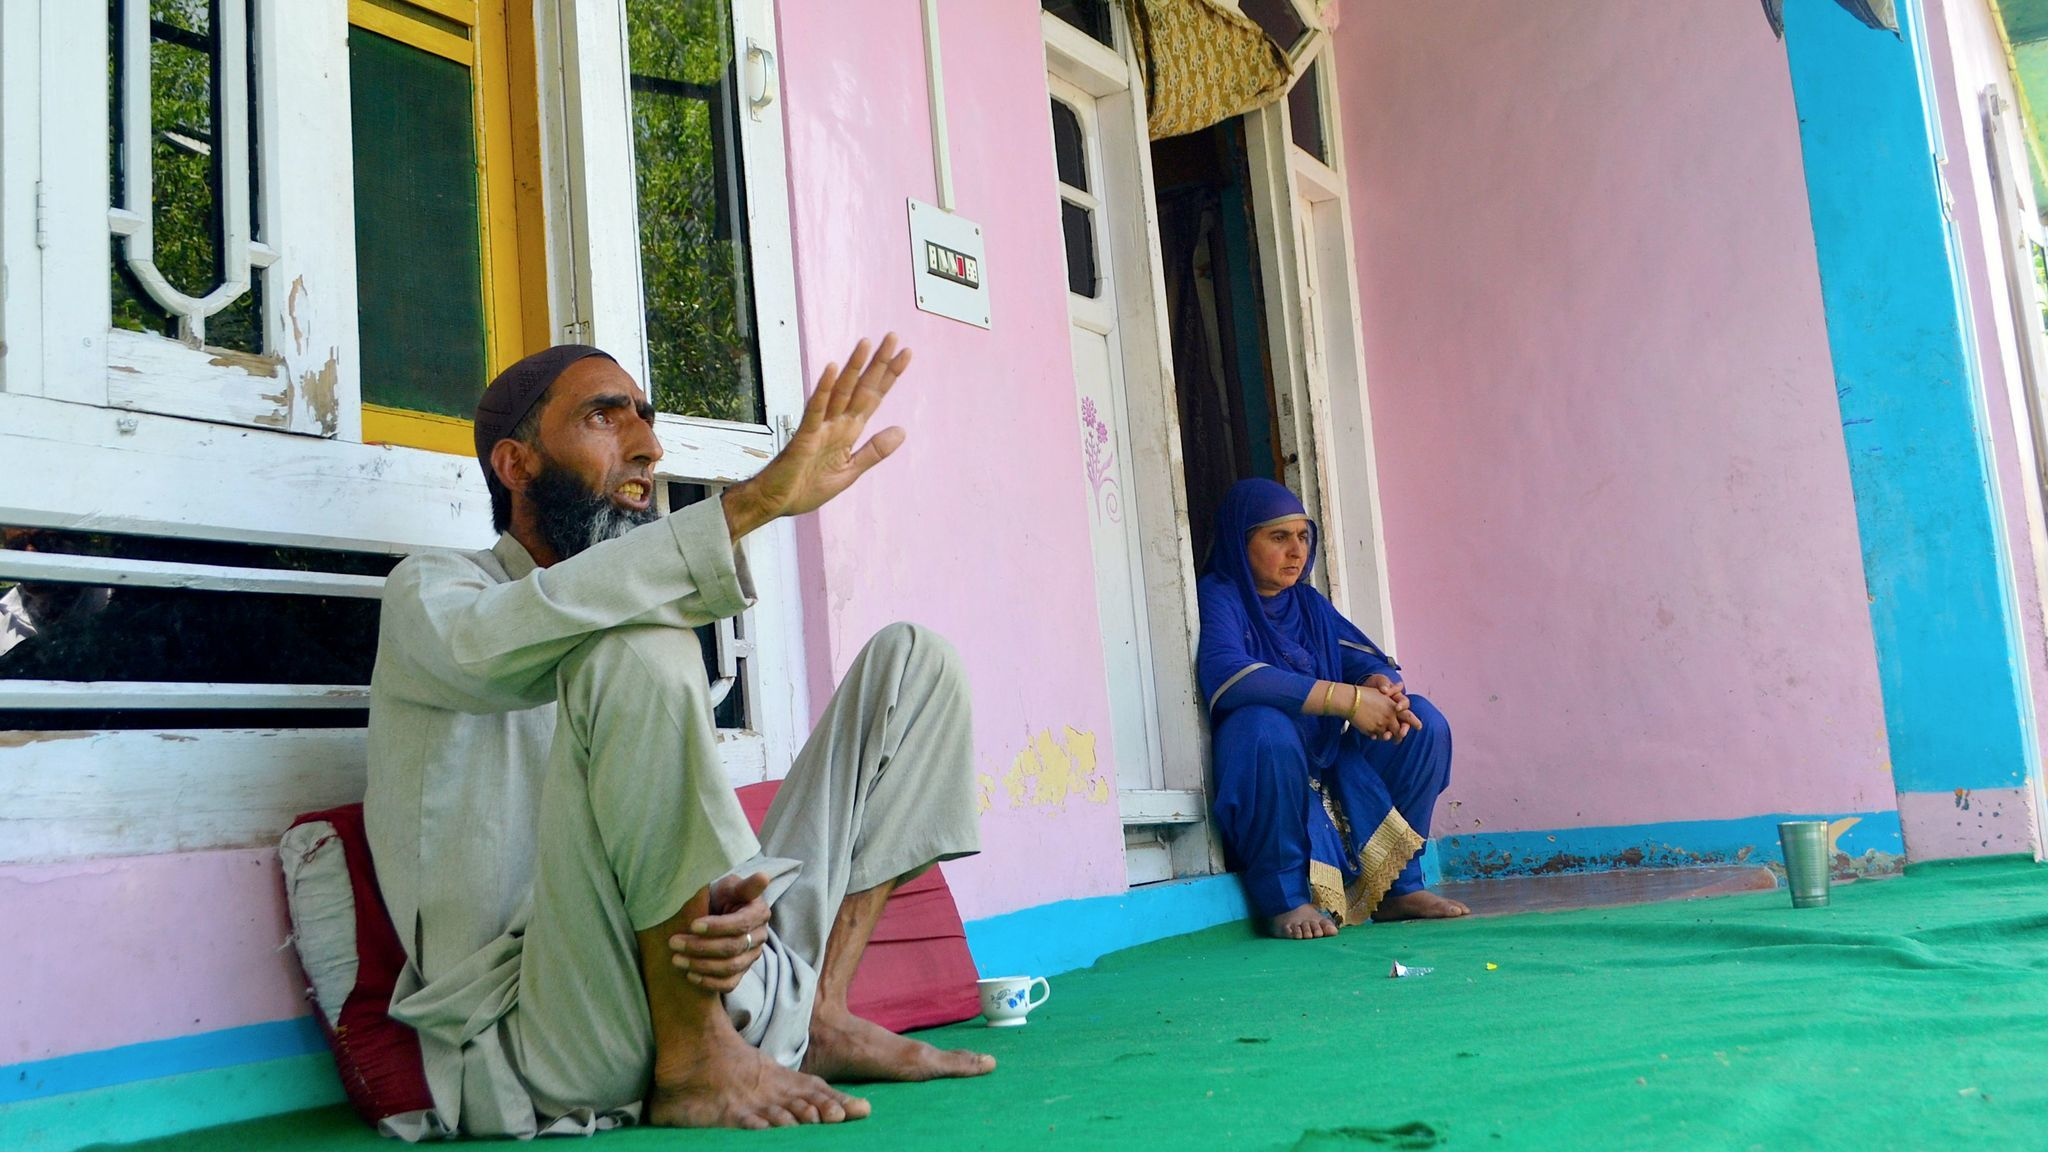 Bashir Ahmad Wani and his wife, Mehmooda Wani, learned their son was accused in a deadly attack on Hindu pilgrims in July 2017.